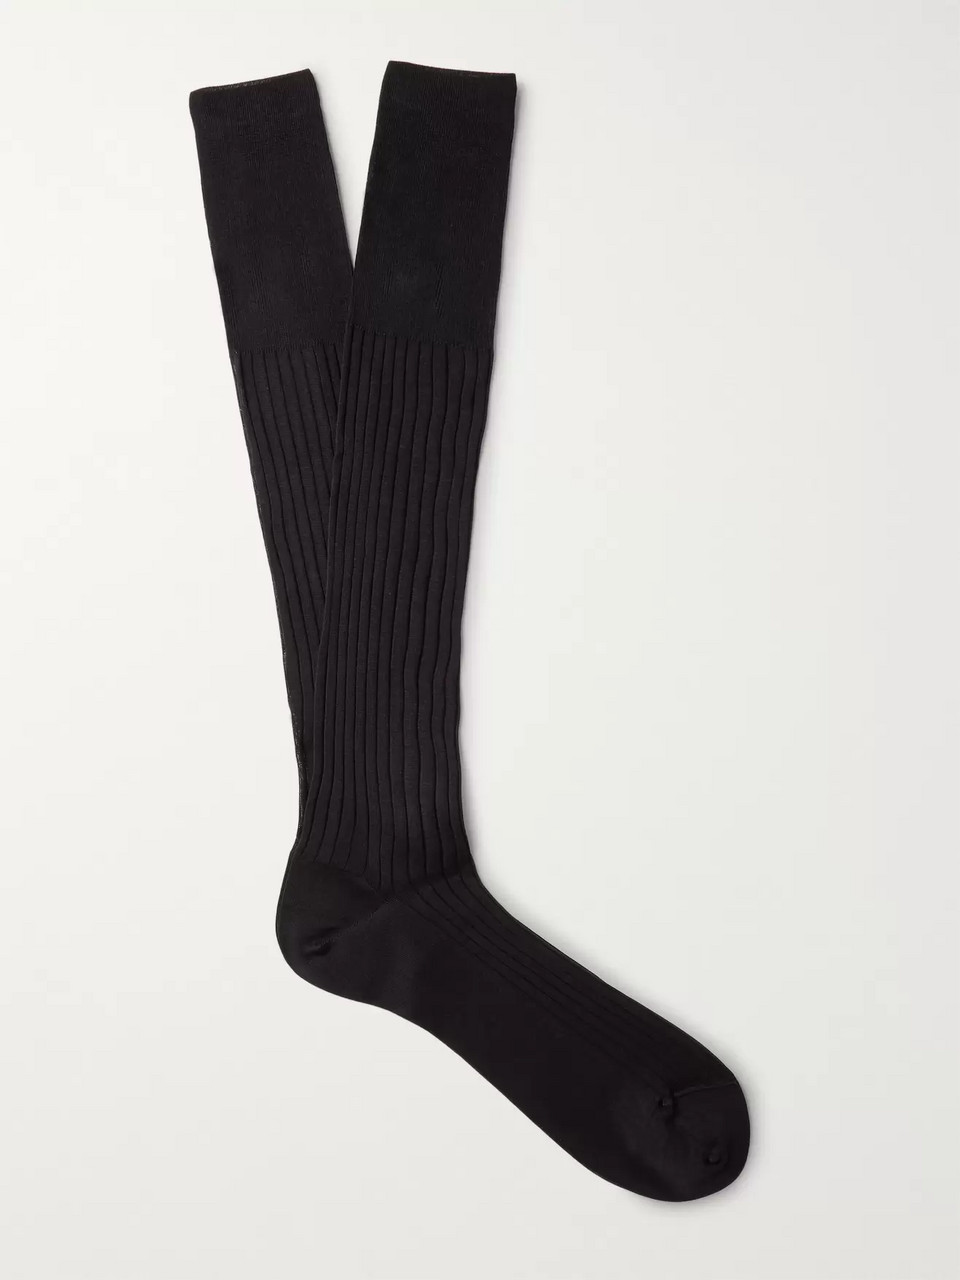 Ermenegildo Zegna Ribbed Cotton Over-the-Calf Socks